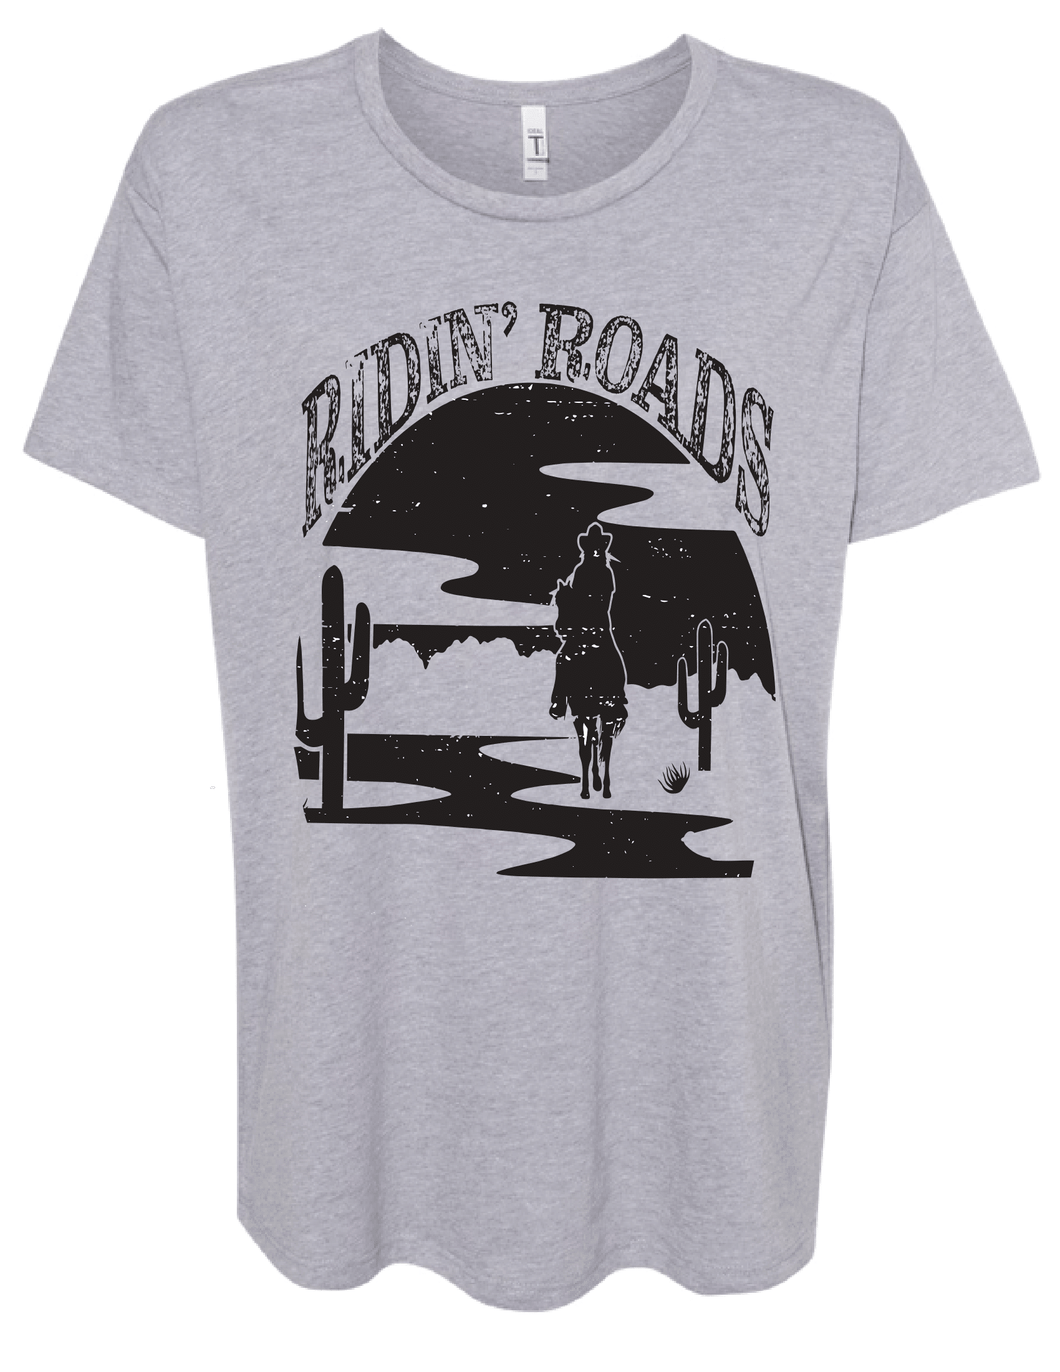 Ridin' Roads Flowy Graphic Tee